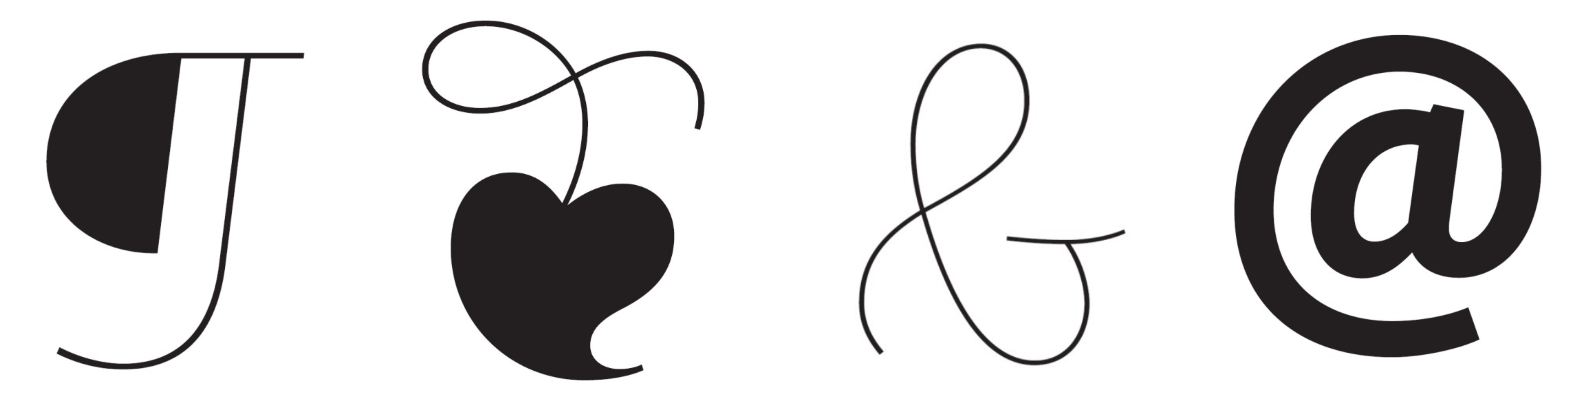 A pilcrow, hedera, ampersand and @-symbol from Jim Ford's Quire Sans. (Quire Sans™ is a trademark of Monotype Imaging Inc. and may be registered in certain other jurisdictions.)